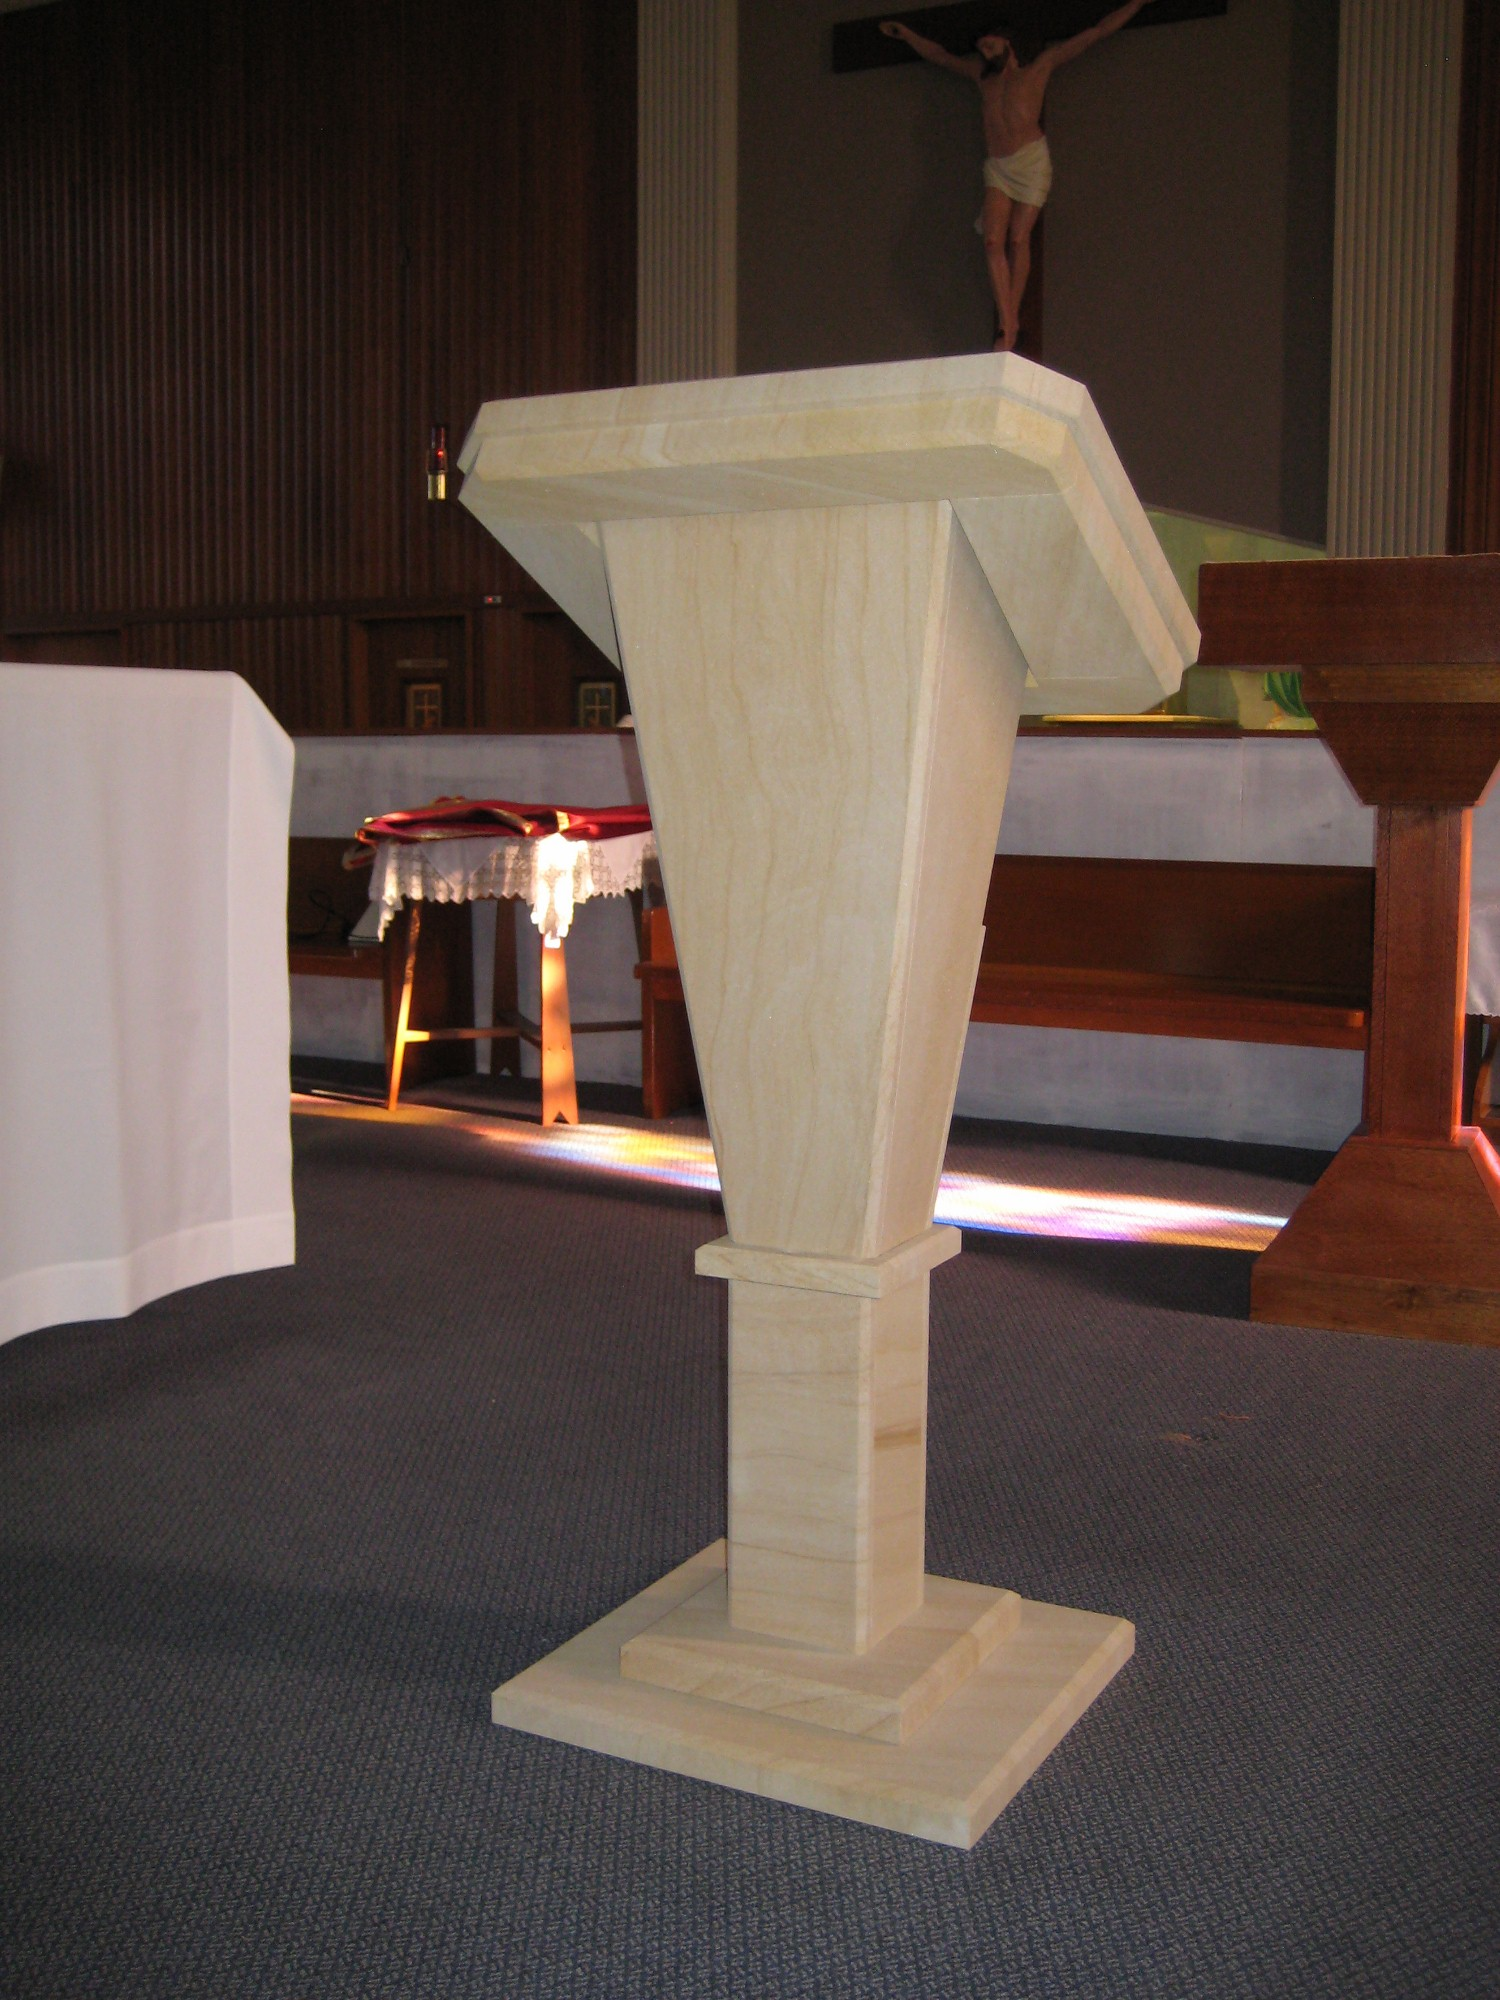 36. Woodgrain sandstone oltar and reading stand for church. We make furniture to order.